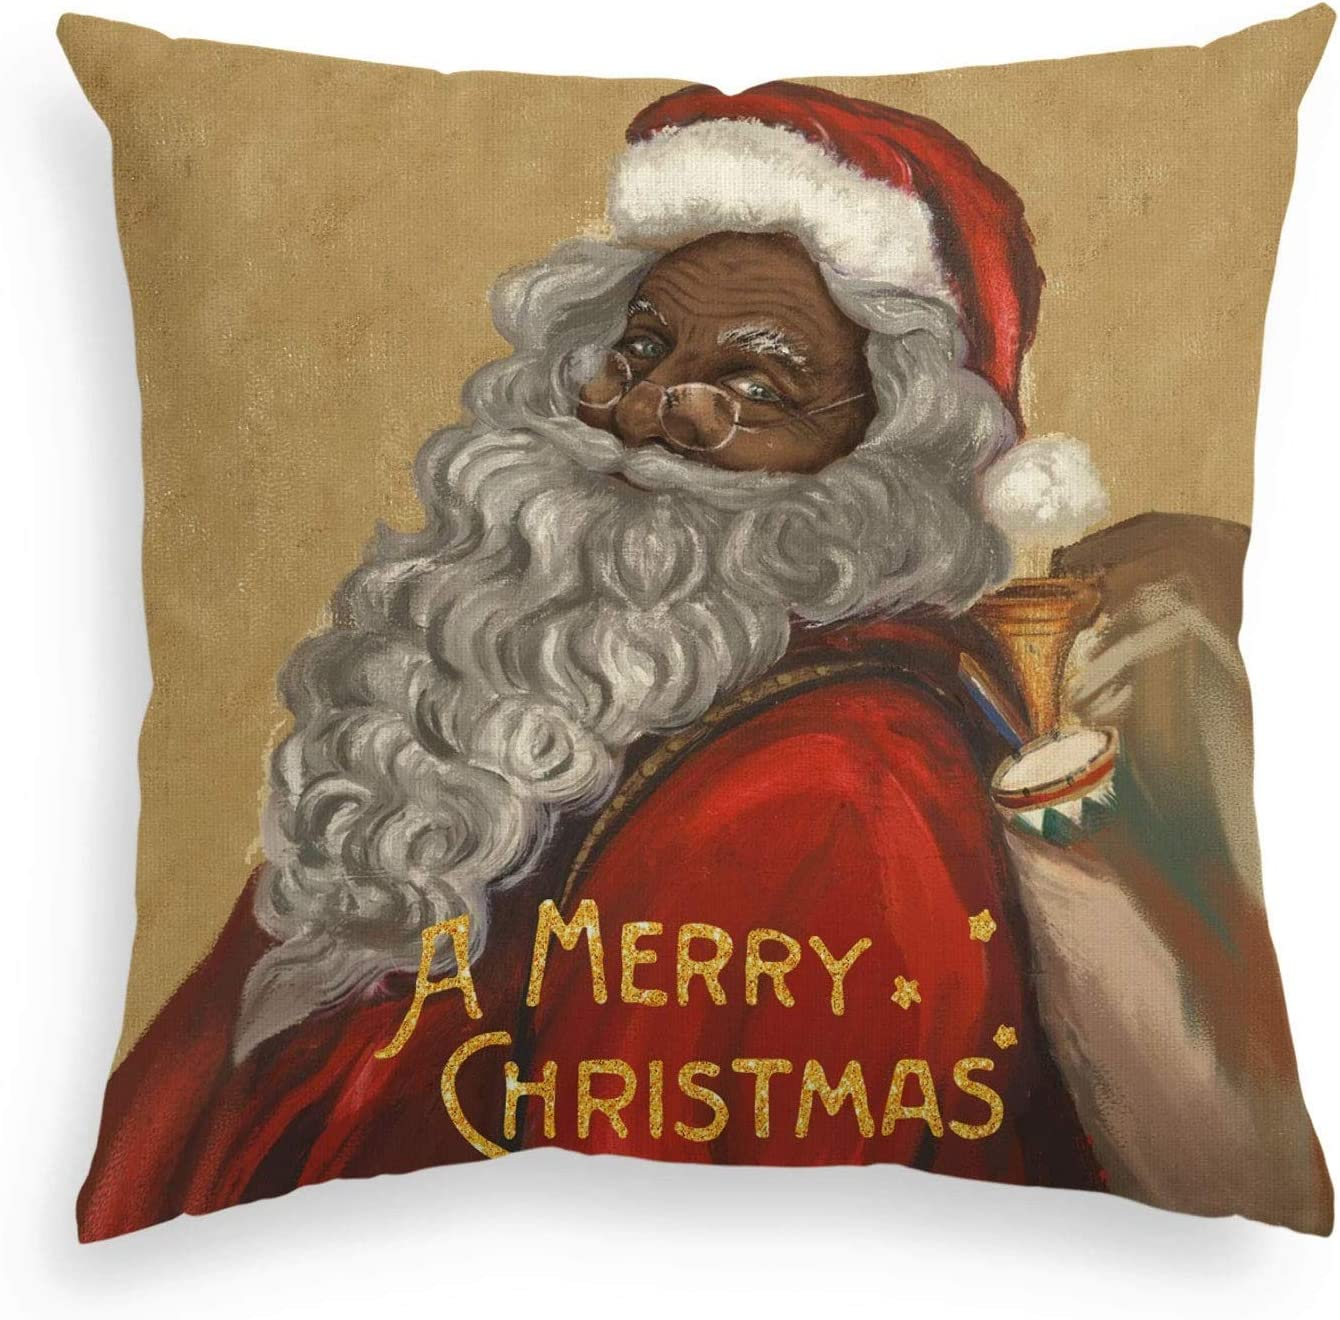 FJPT Throw Pillow Cover African American Black Santa Christmas Linen Pillowslip Winter Holiday Cushion Case Decoration for Sofa Bed Pillowcase 26x26 inch